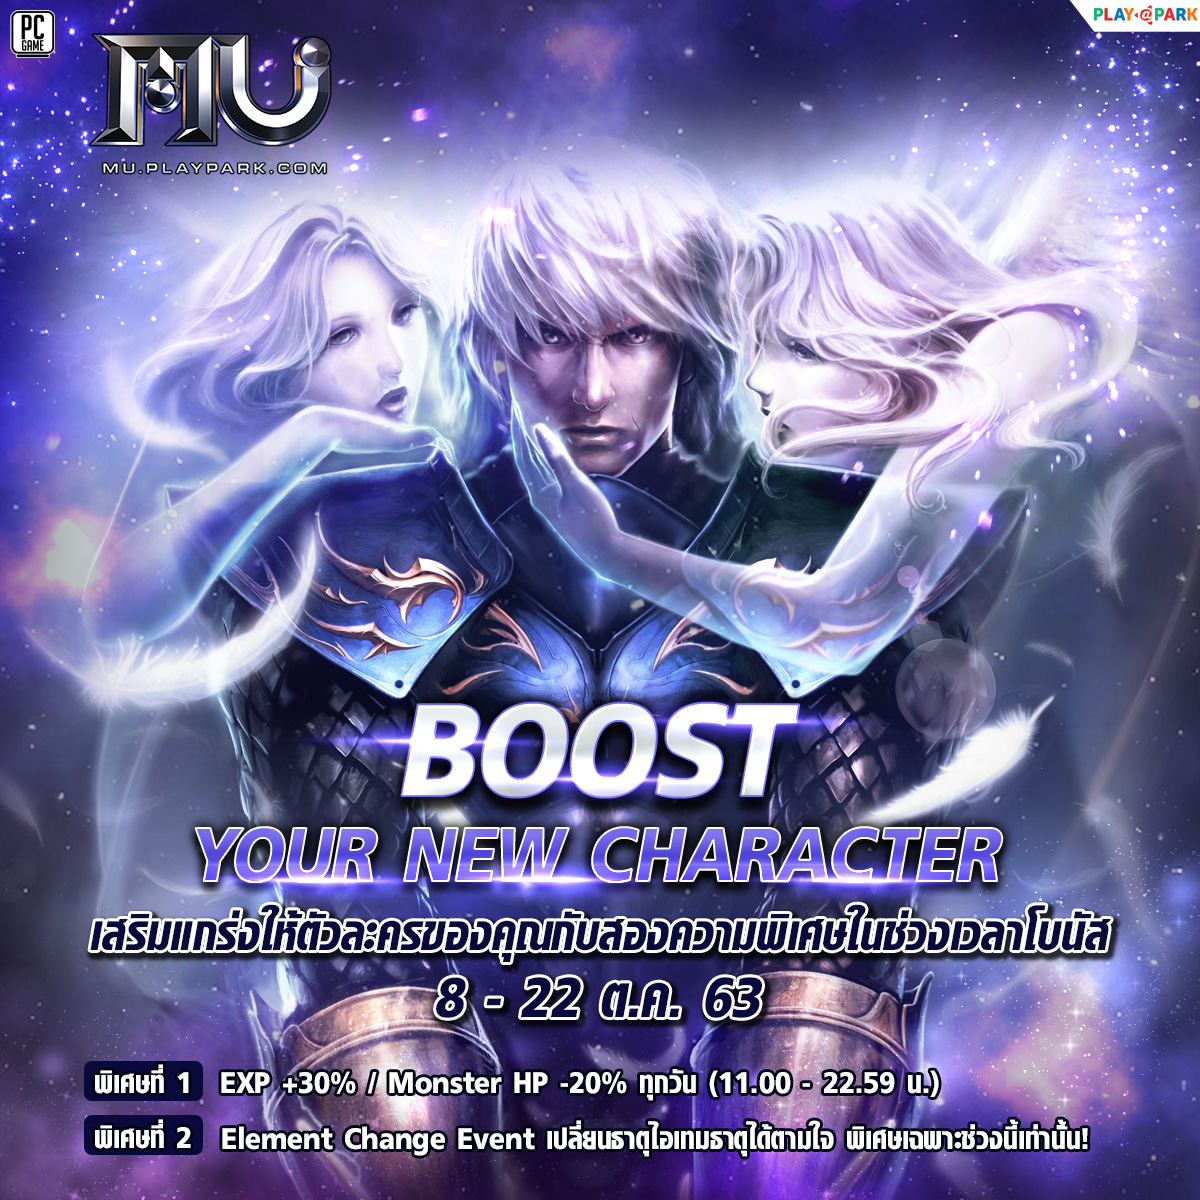 Boost Your New Character